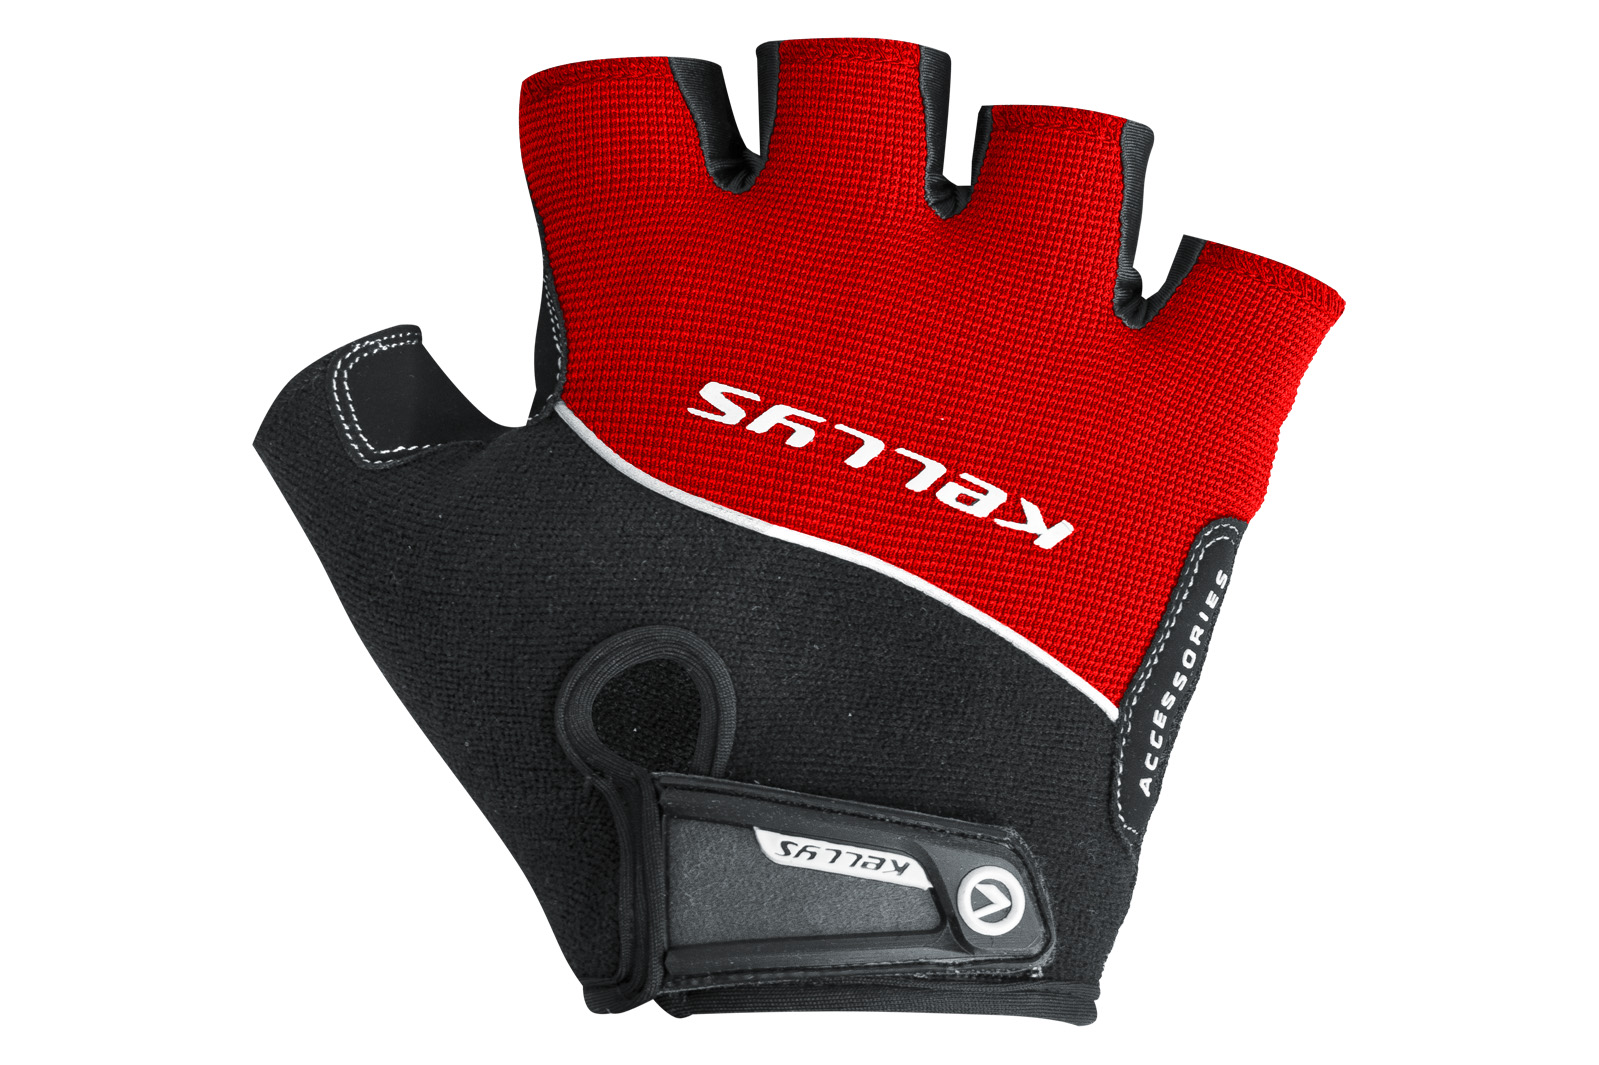 Handschuhe RACE red S NEW - Mile-Multisport